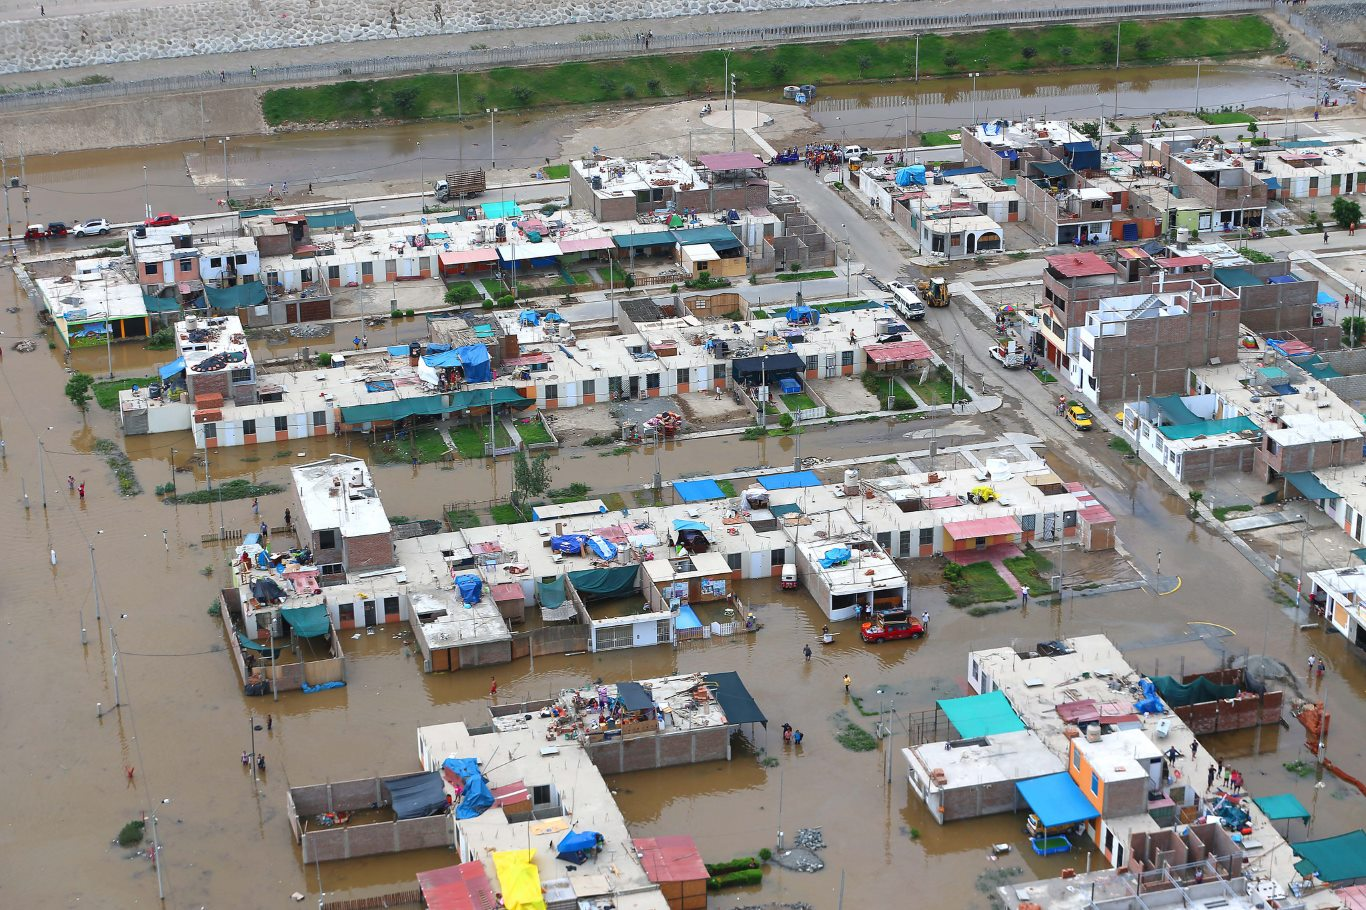 Climate change in Peru: Flooding